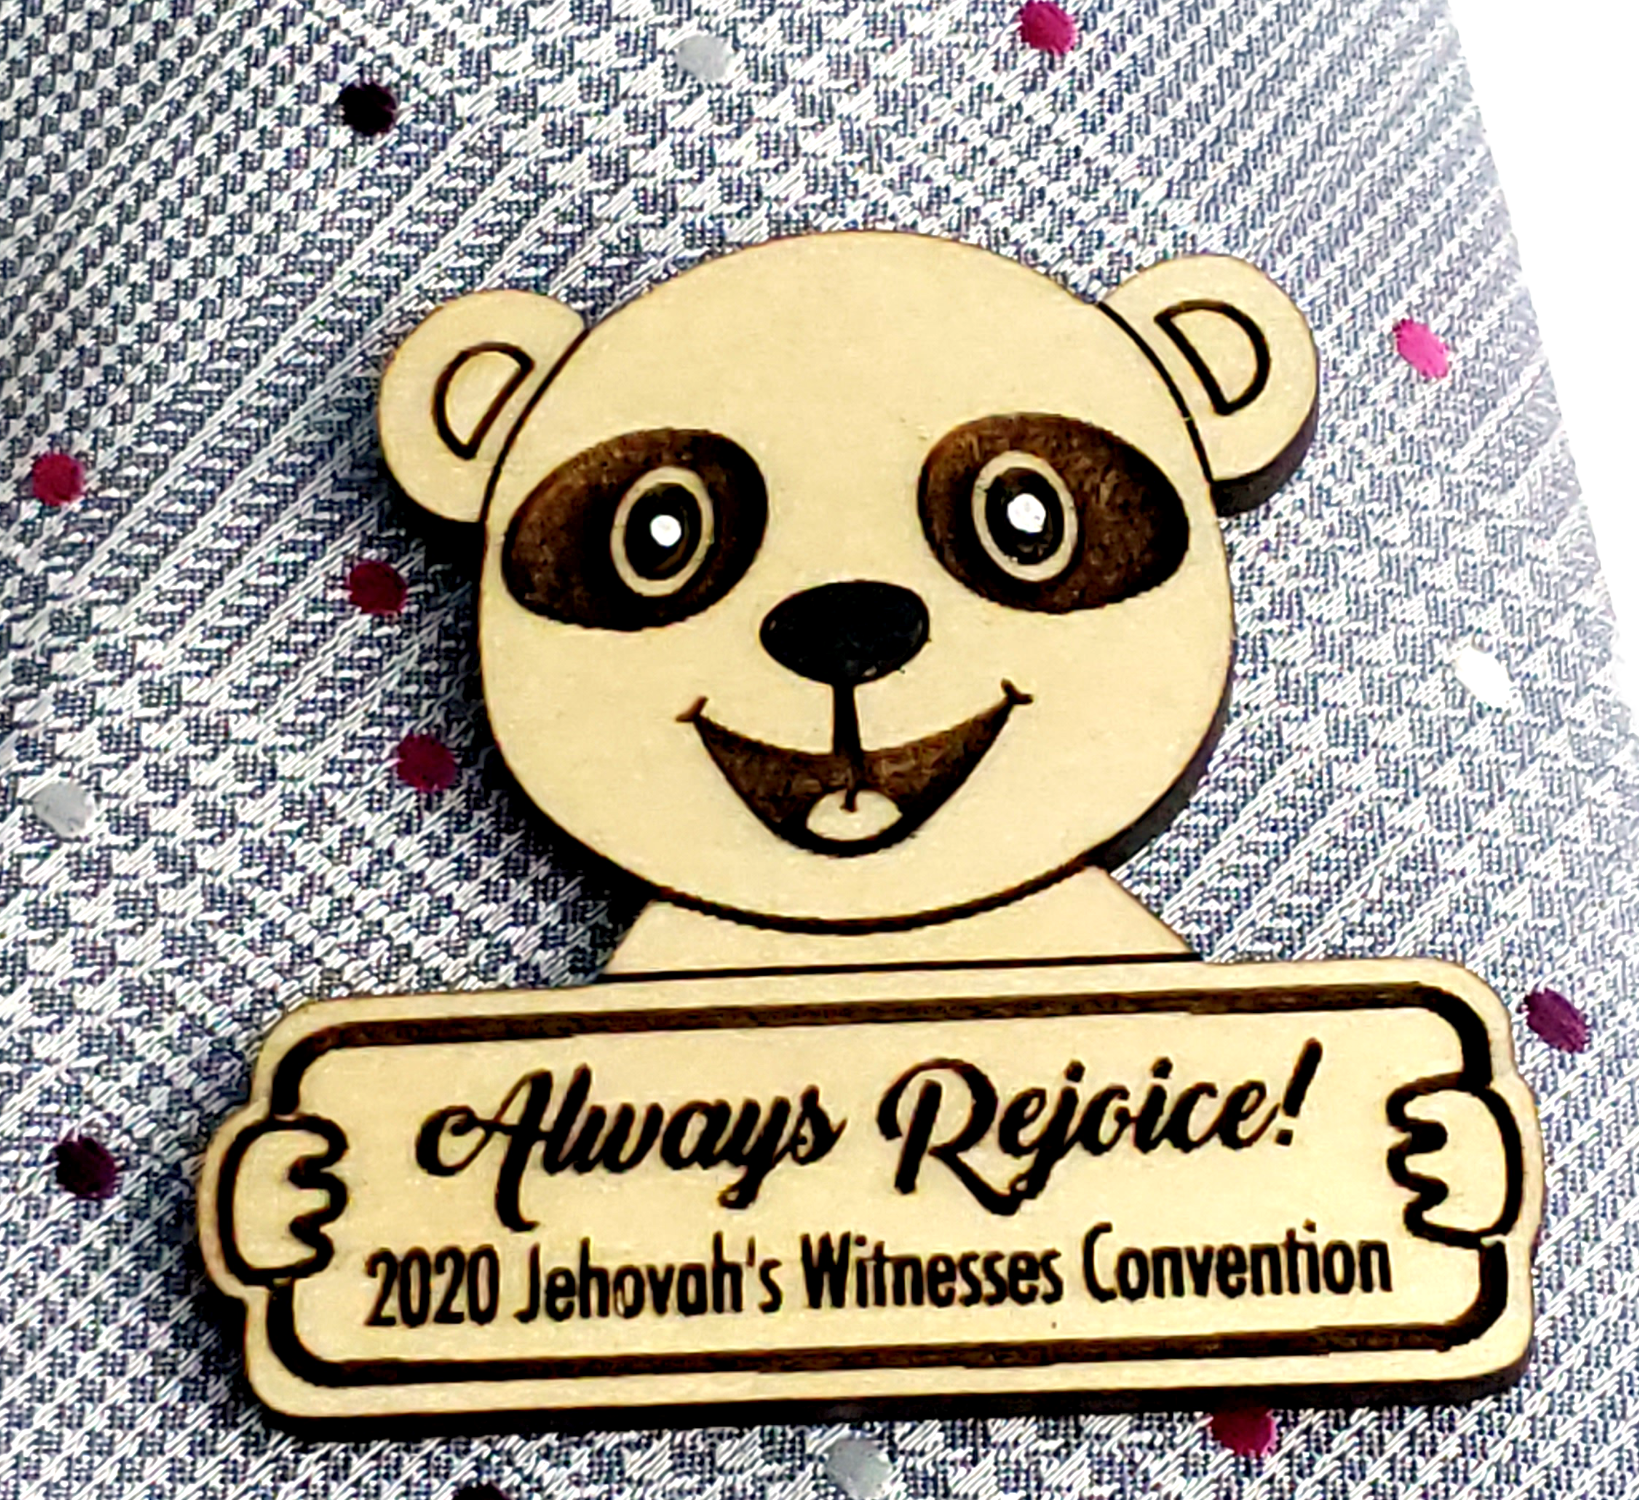 Always Rejoice 2020 Convention Pin Wooden - Panda